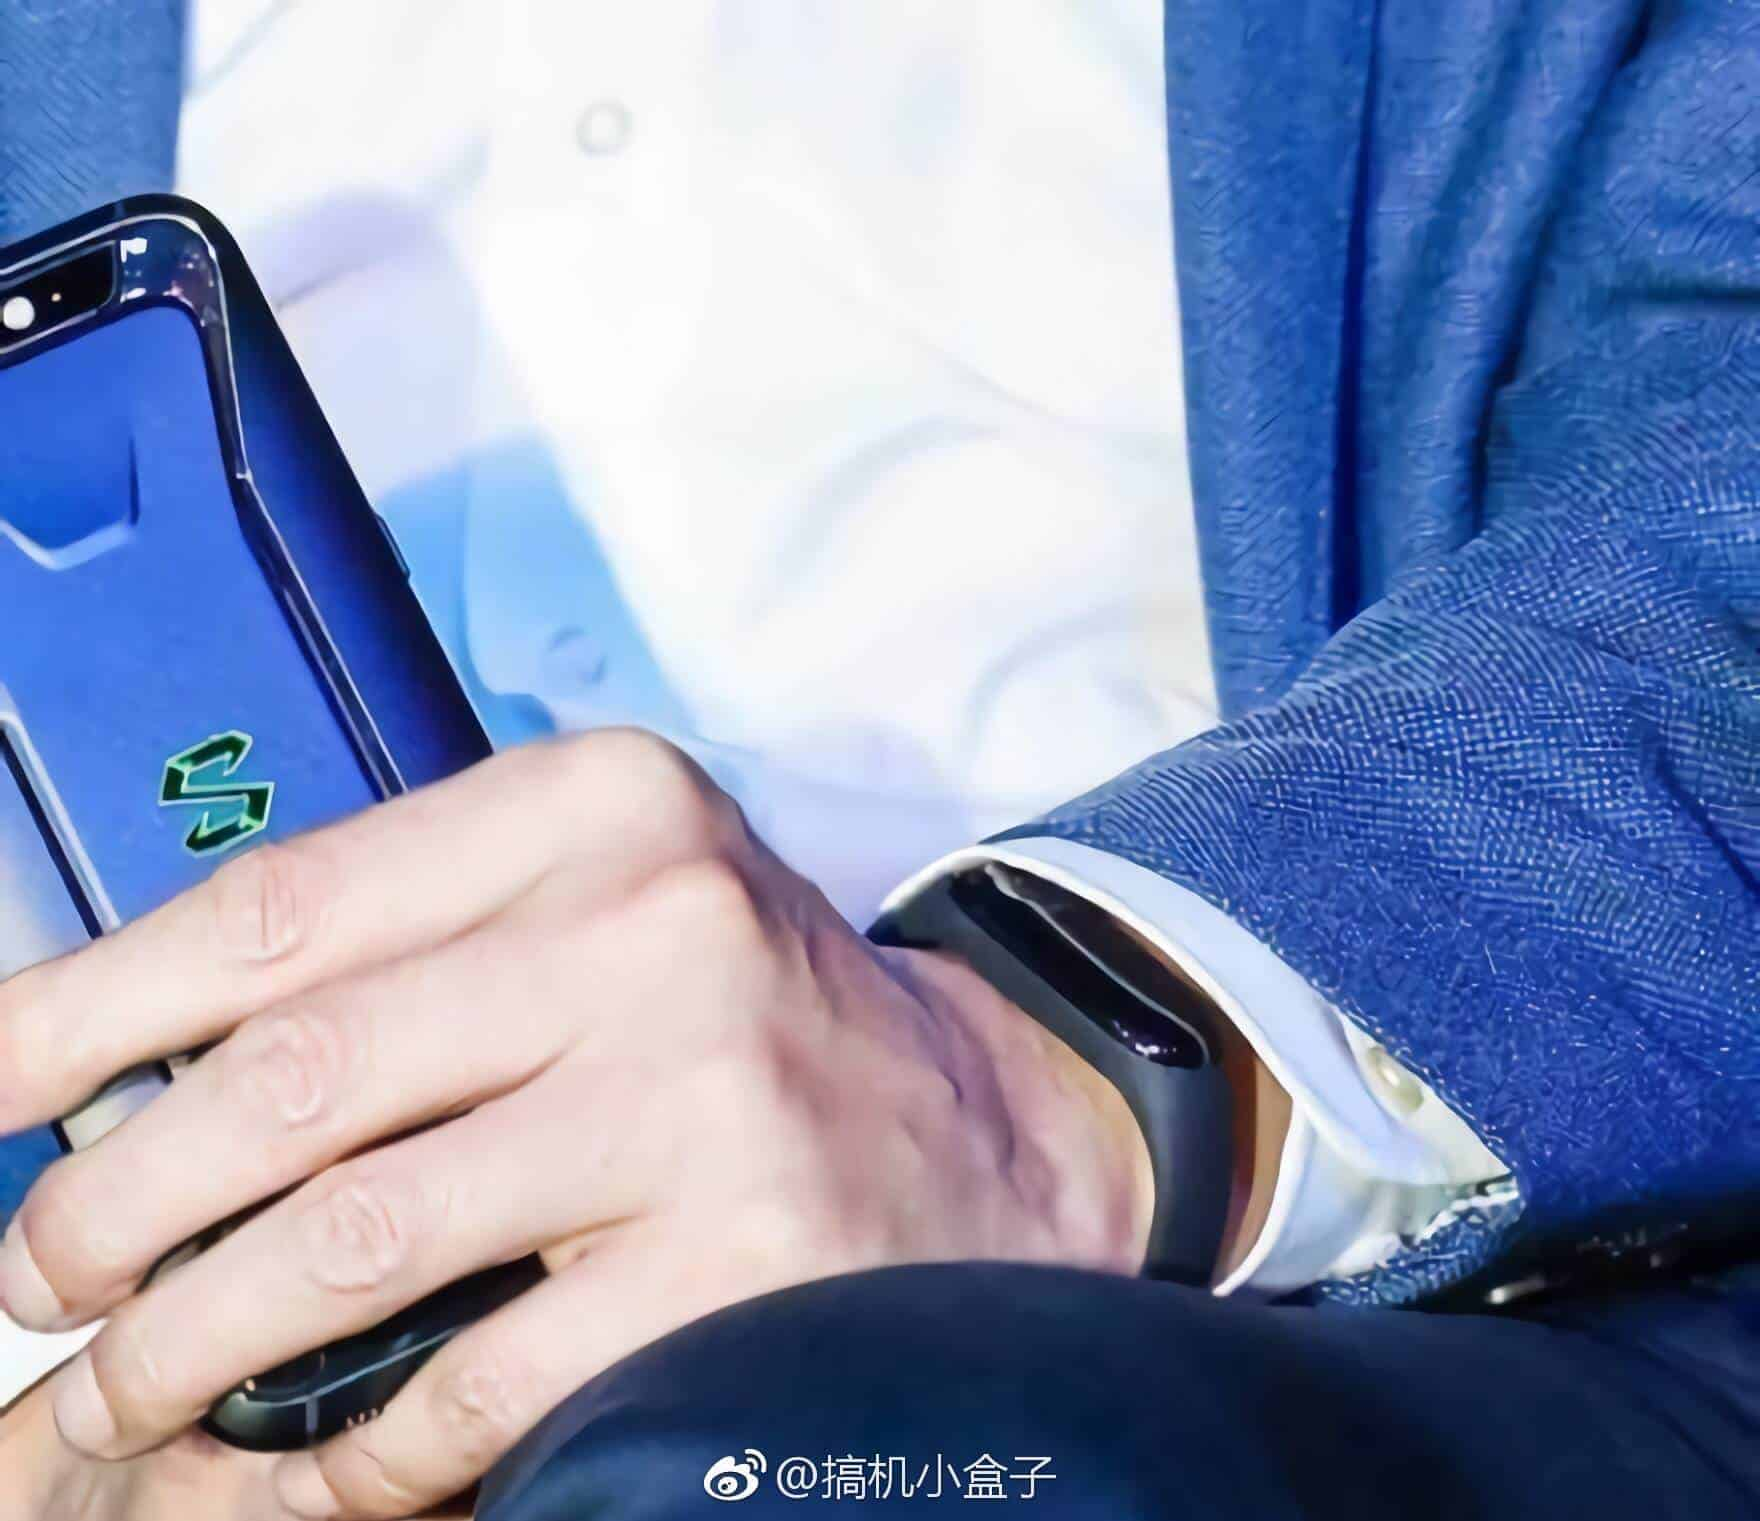 Lei Jun Wearing Suspected Mi Band 3 02 from MyDrivers